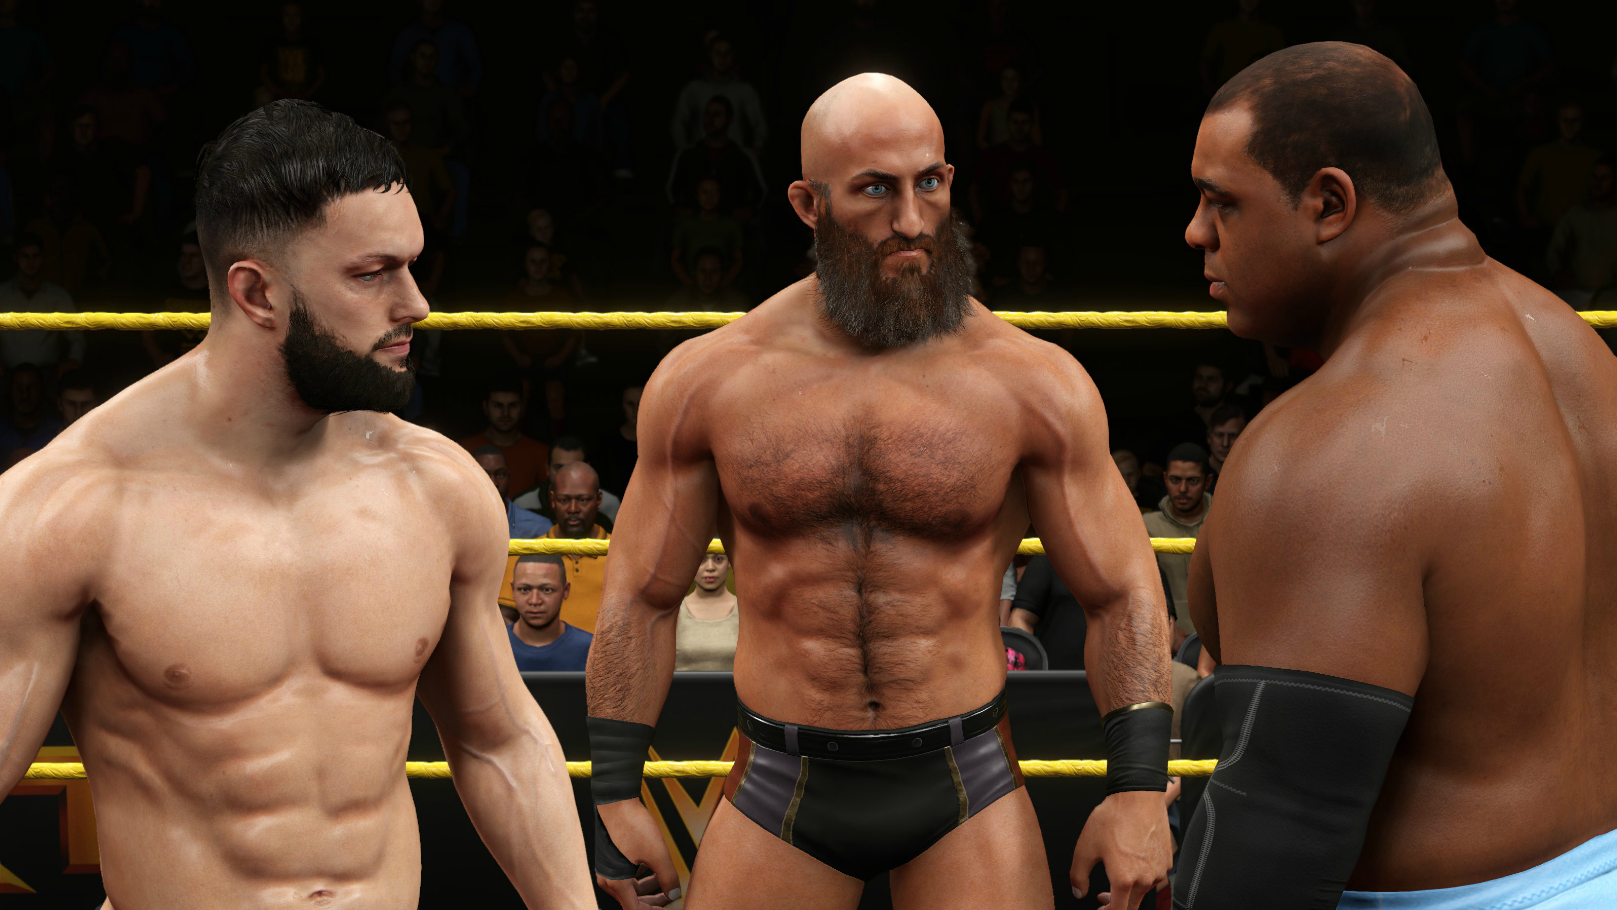 2K Games Wants To Spend More Time Developing Next Game After The Disaster That Was WWE 2K20